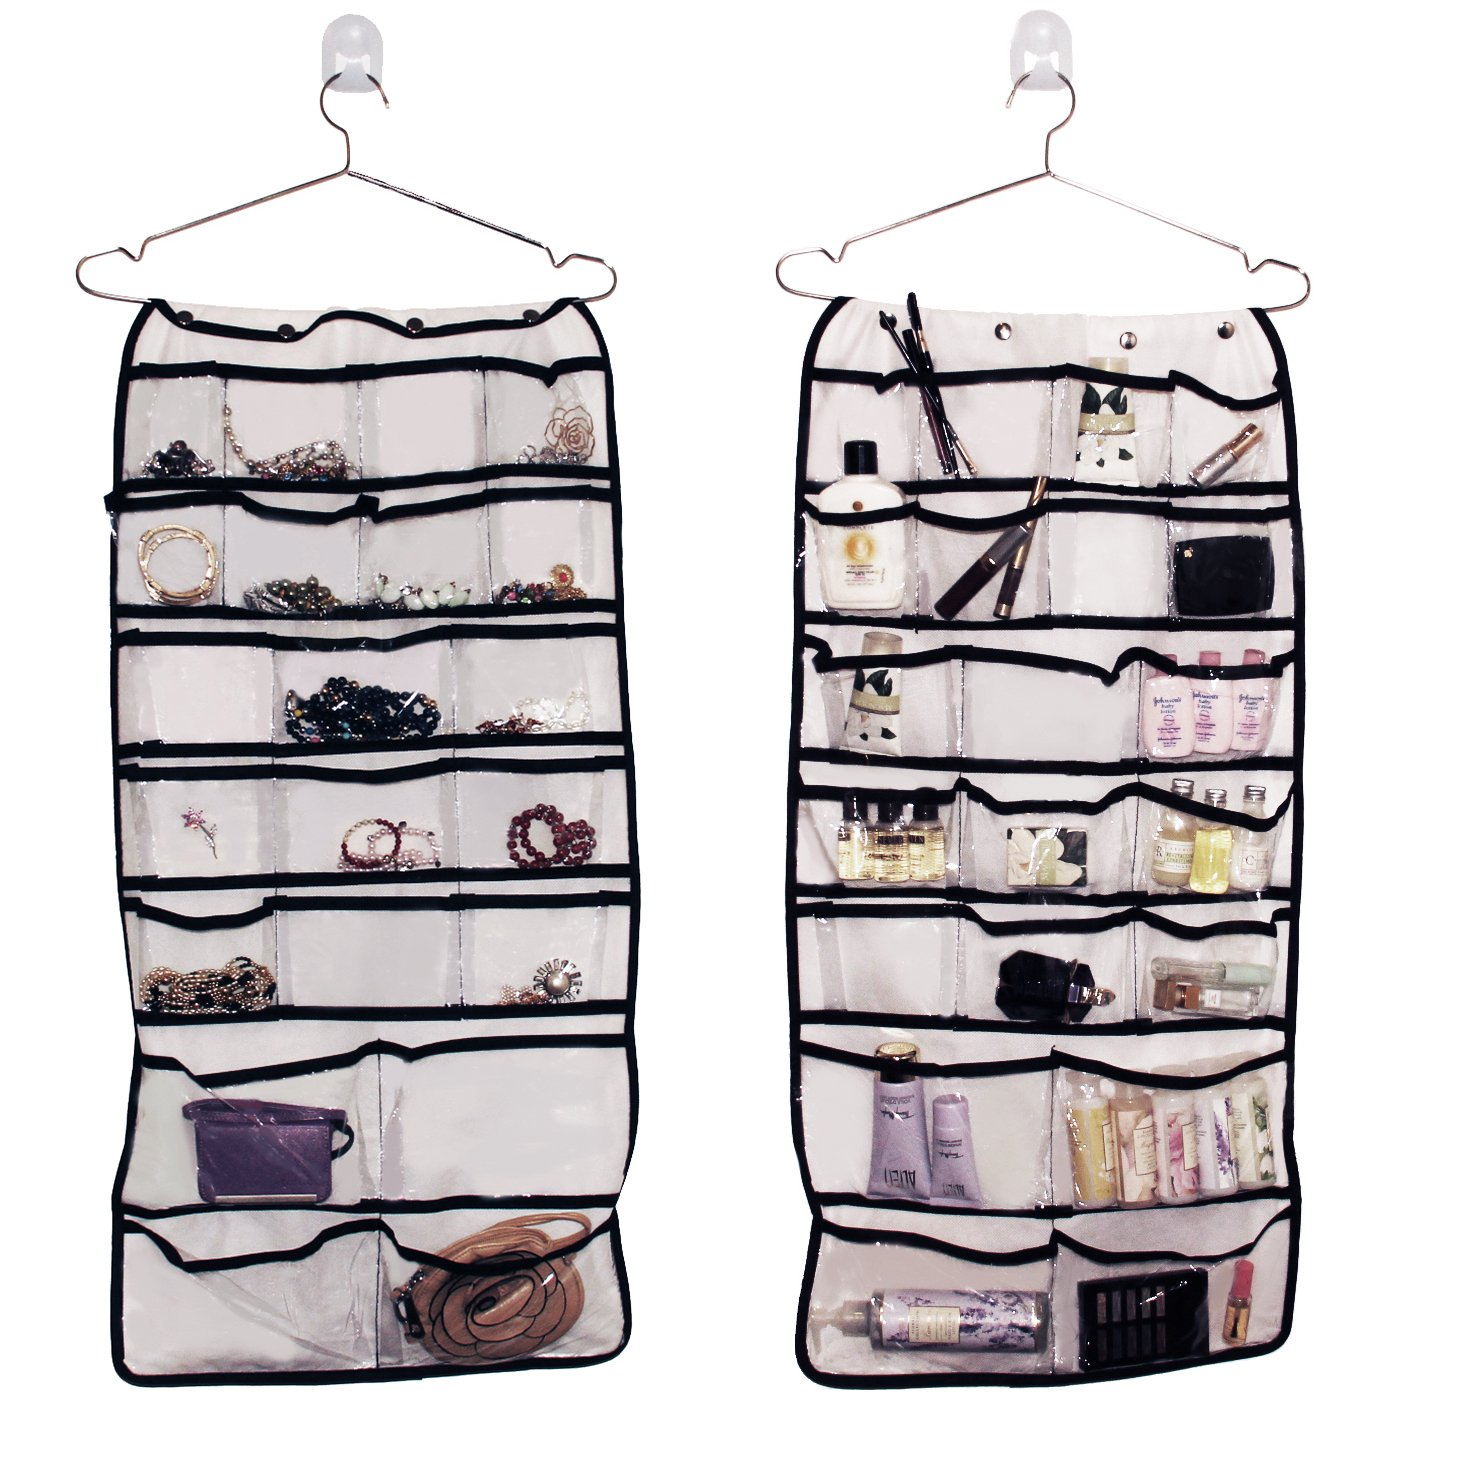 Hanging jewelry organizer with double sided pockets 35 Inches long 17 inches wide